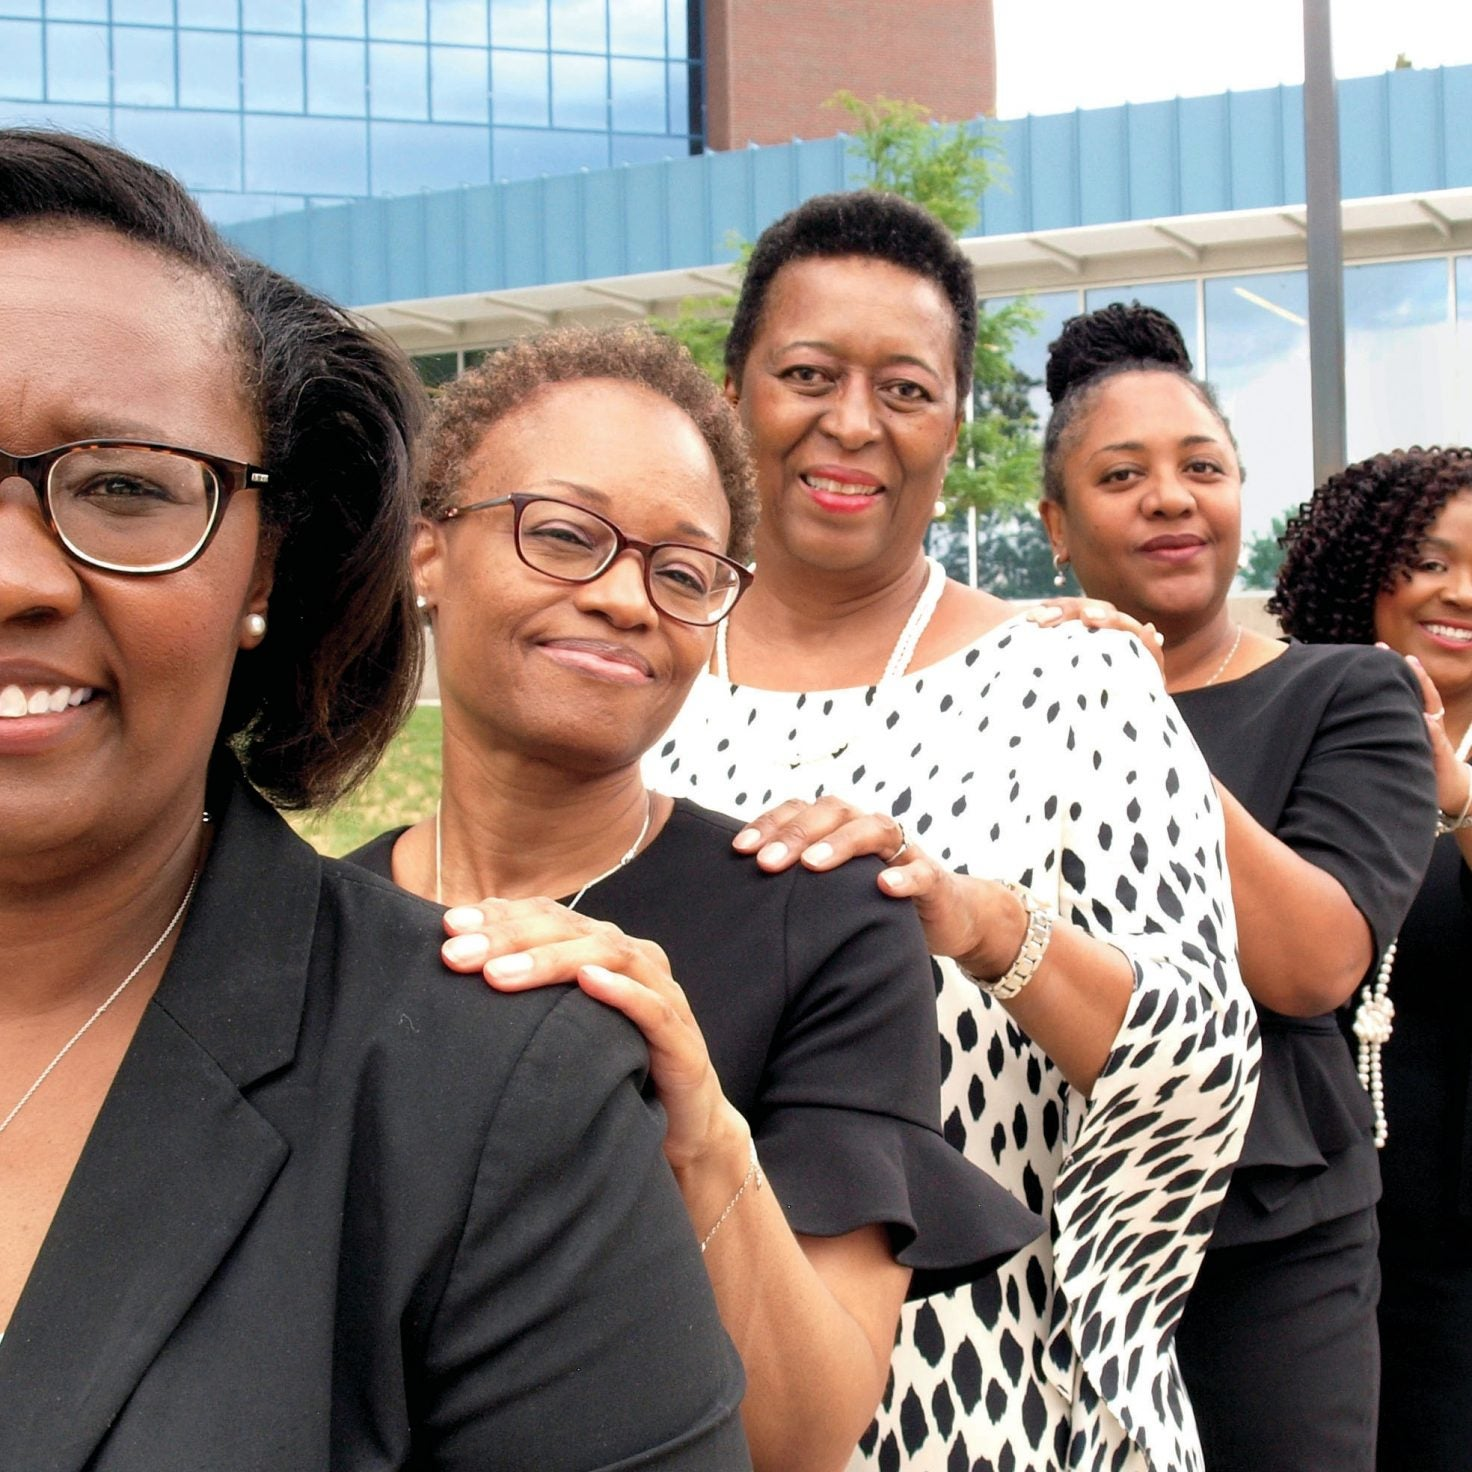 All Rise: A Record Number of Black Women Judges Have Been Appointed in Colorado